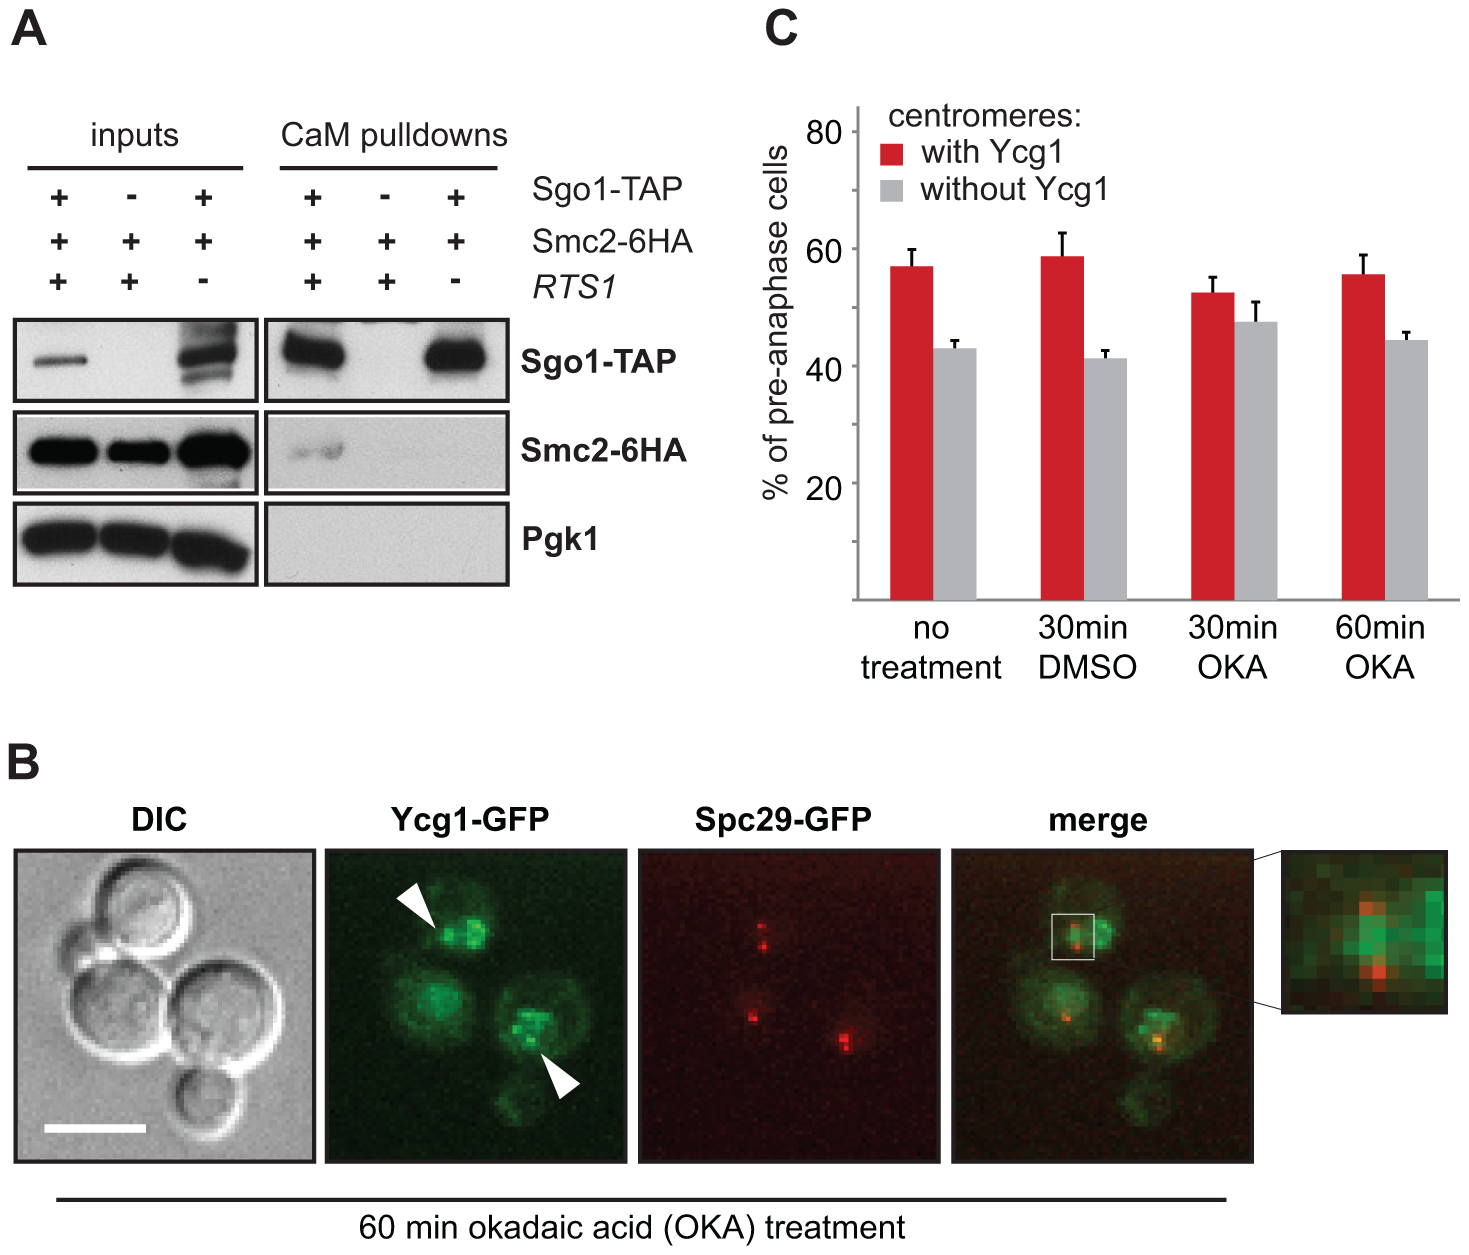 Centromeric localization of condensin does not require PP2A's phosphatase activity.